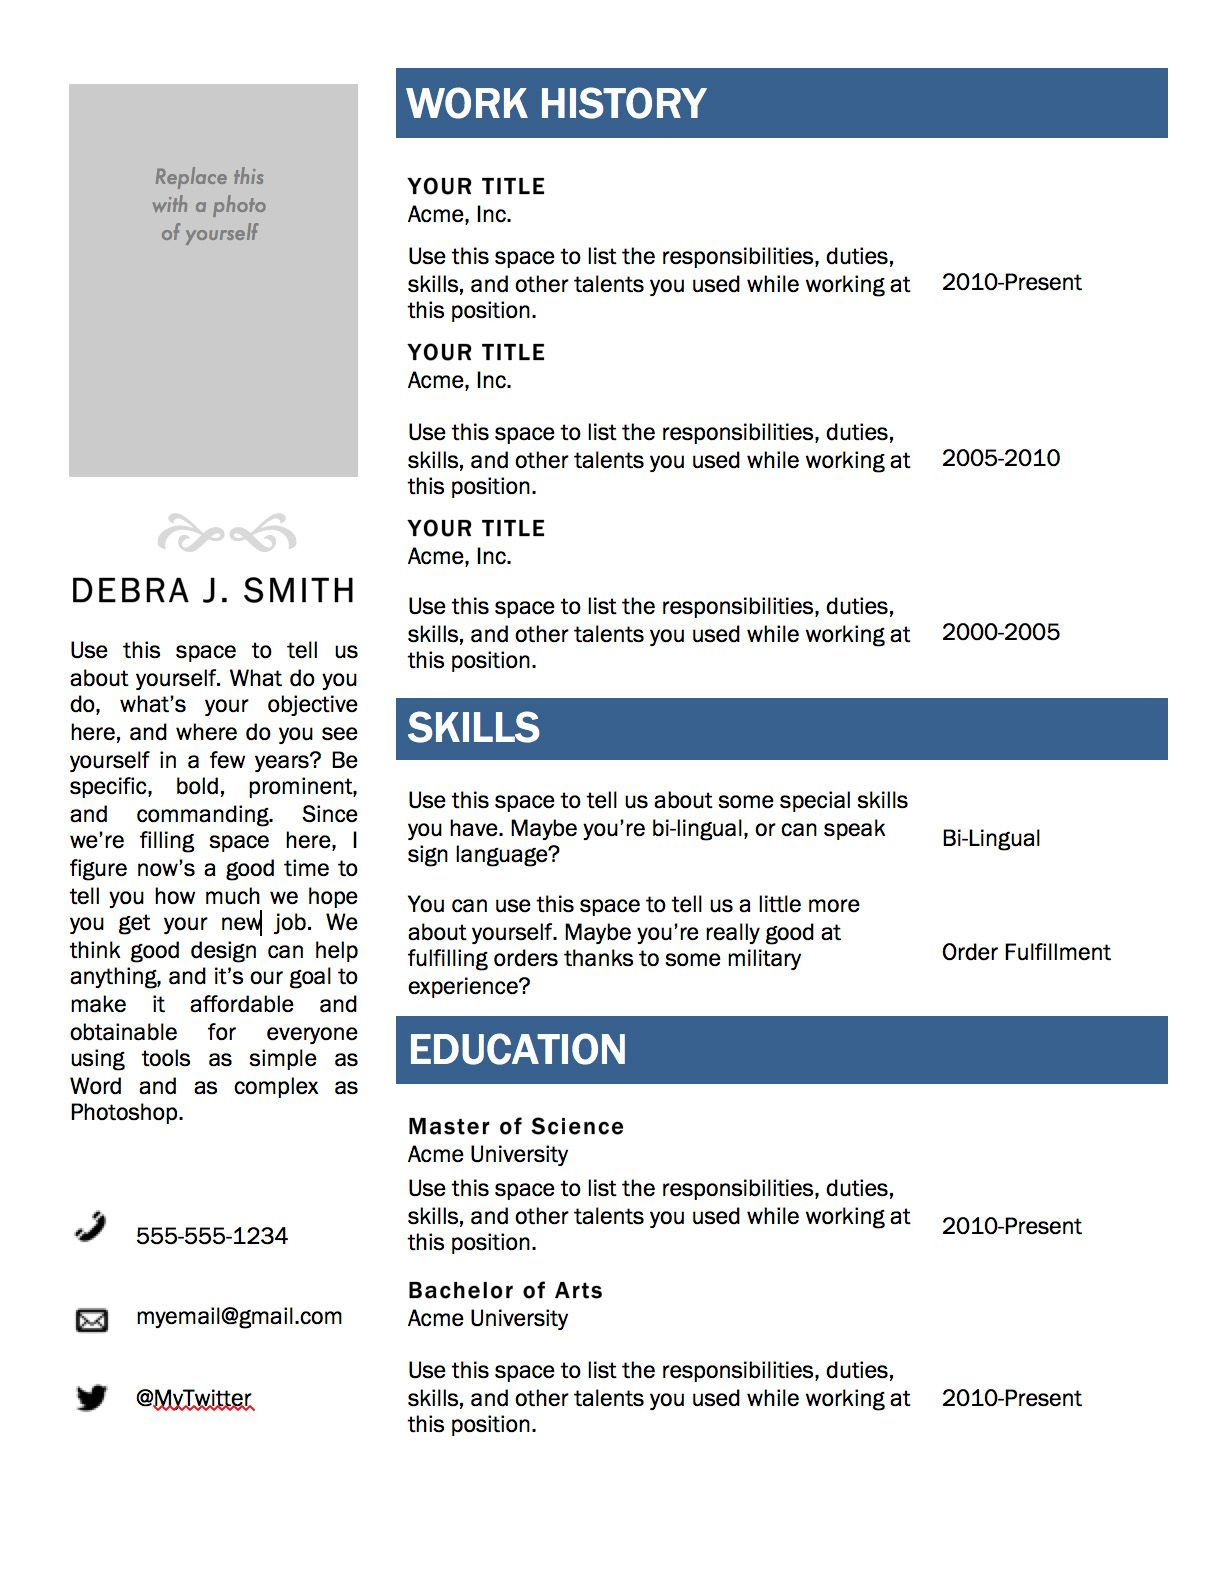 Resume Format Microsoft Word 2010 Colona.rsd7 intended